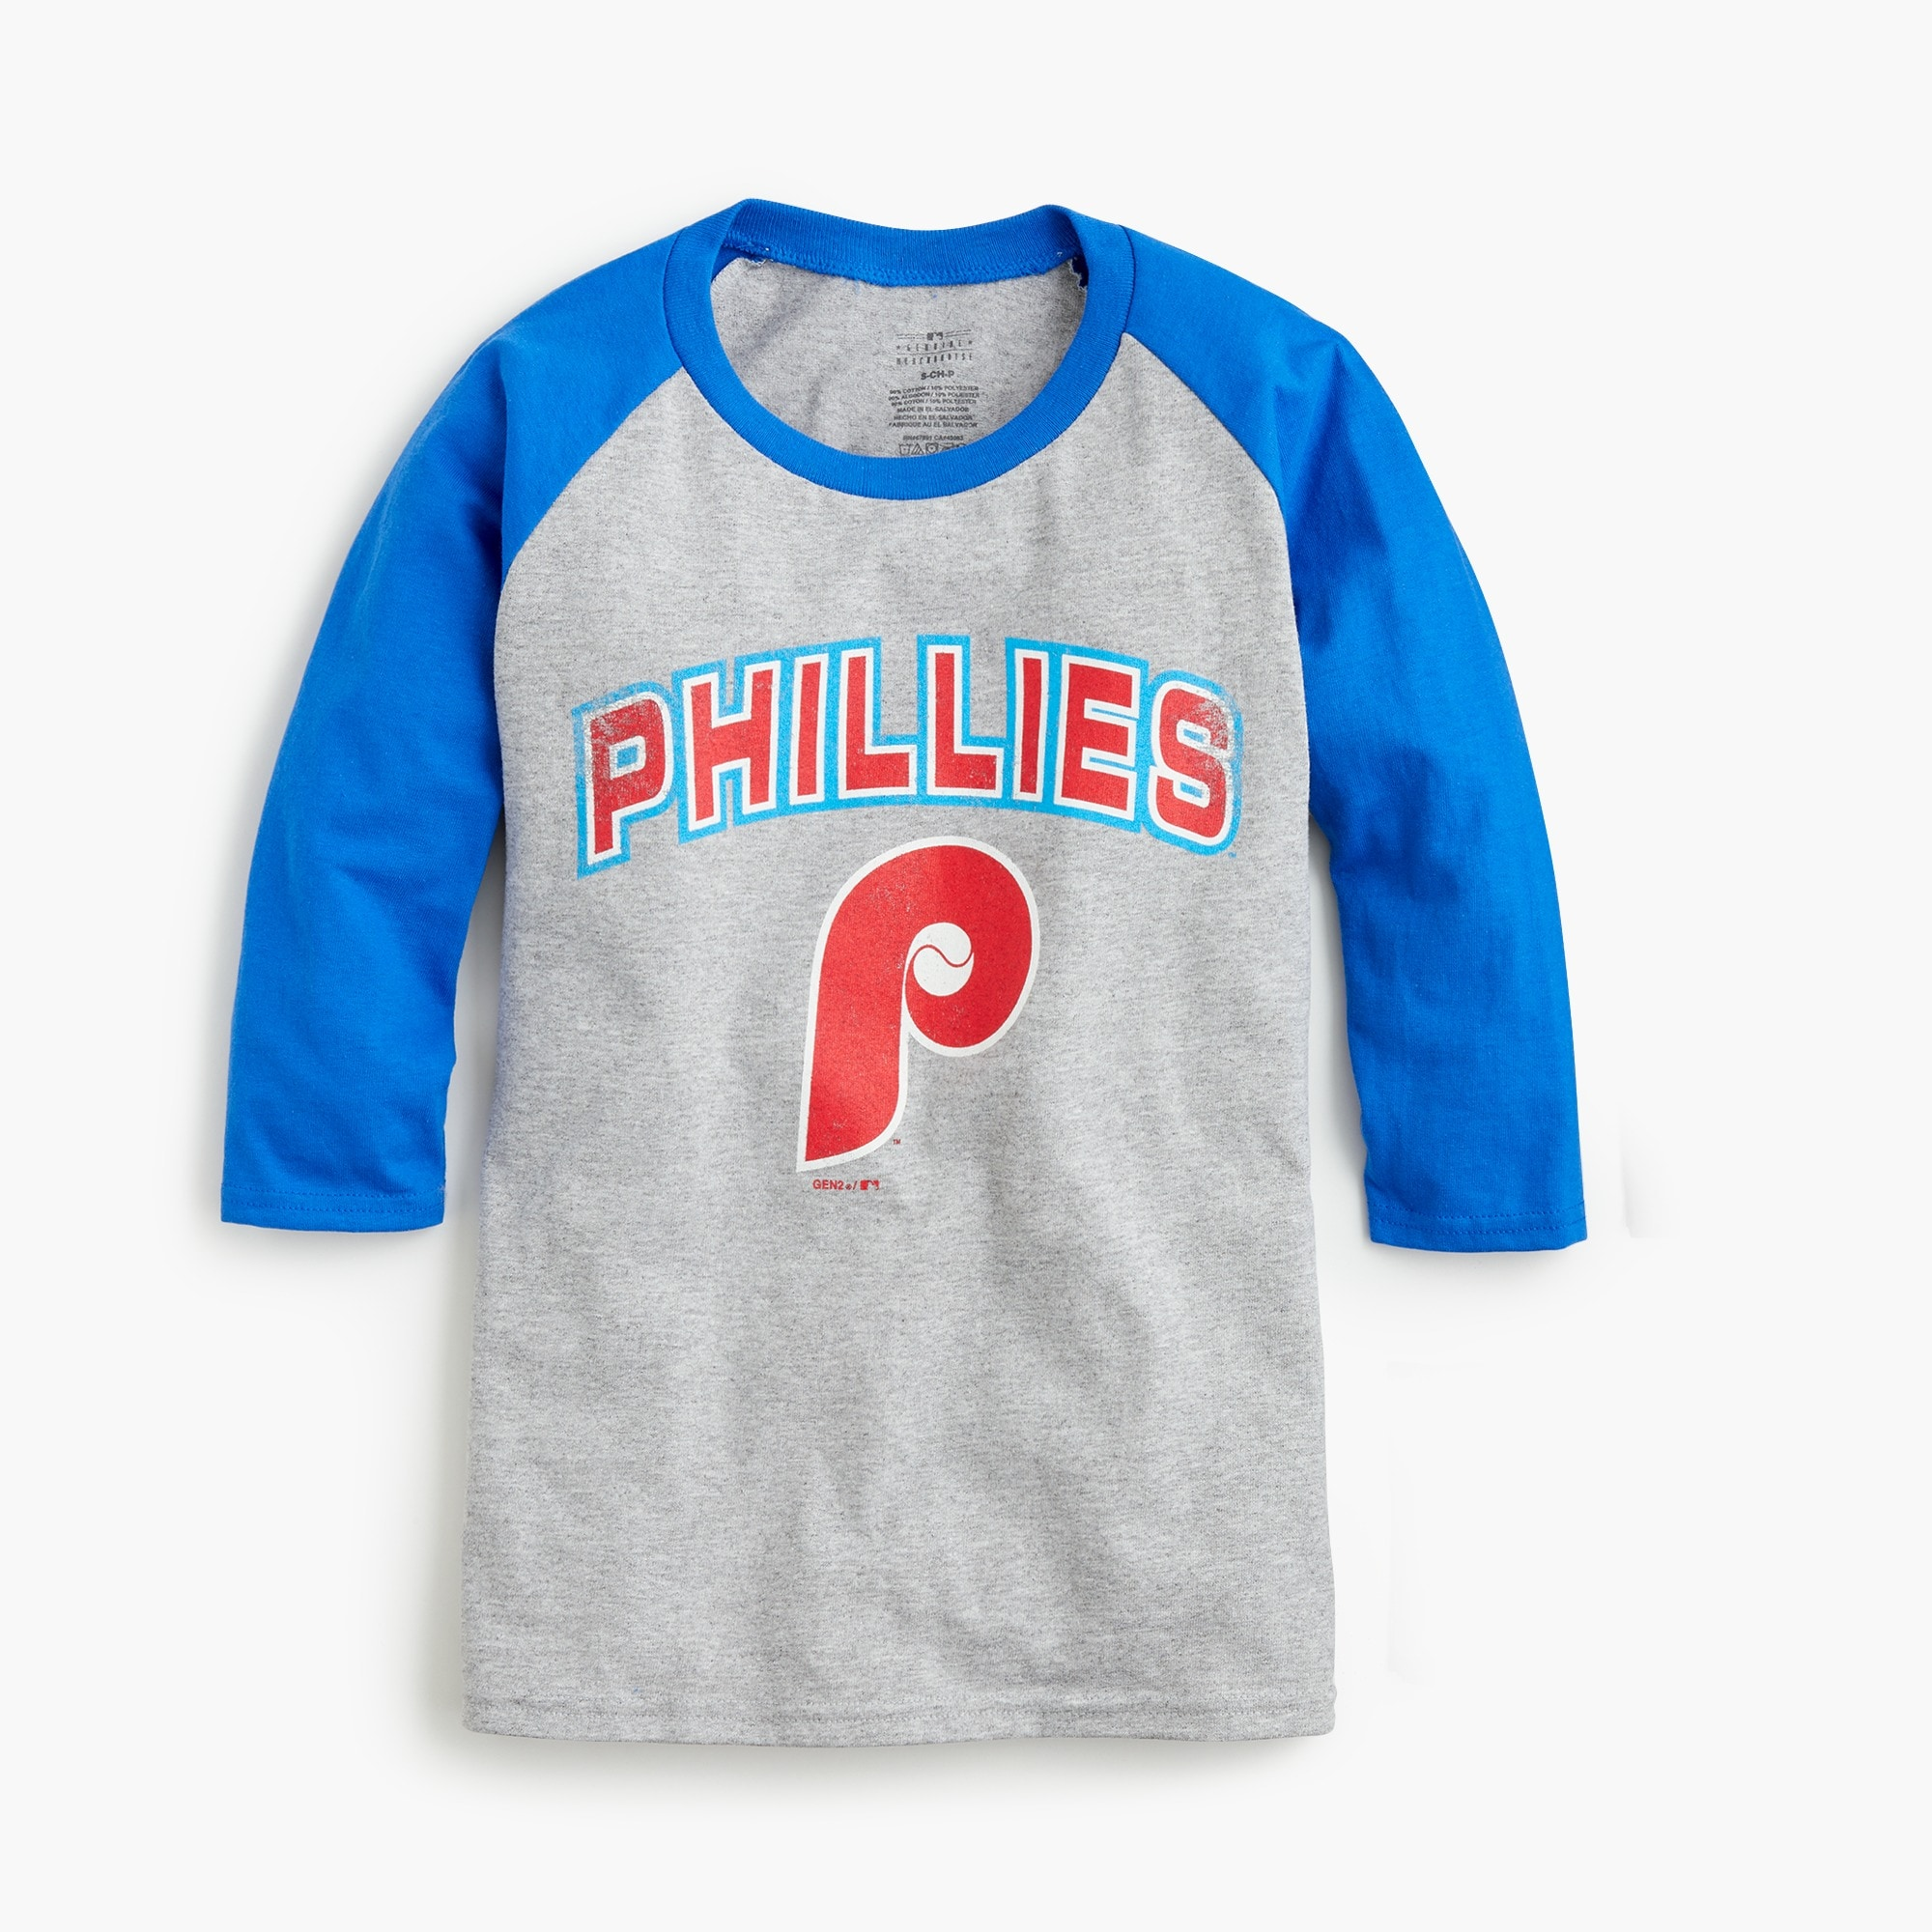 boys Kids' Philadelphia Phillies baseball T-shirt